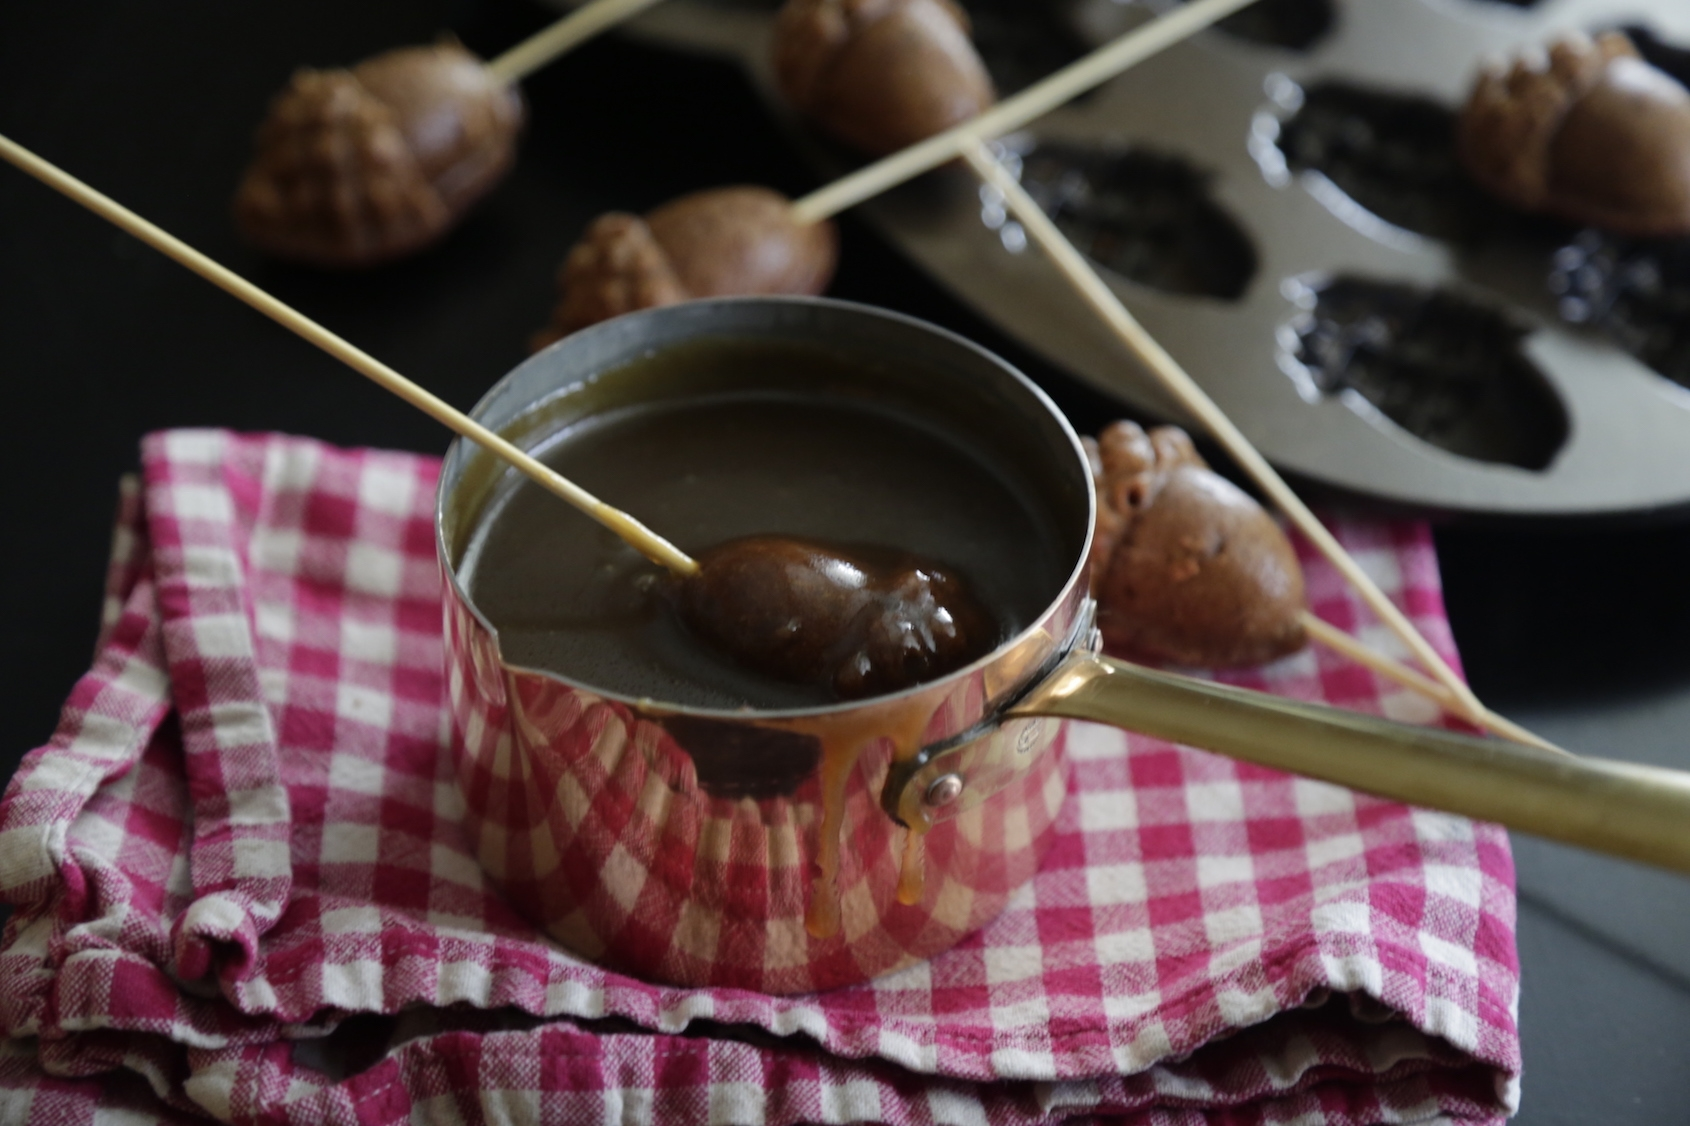 GINGERBREAD WITH STICKY TOFFEE FONDUE